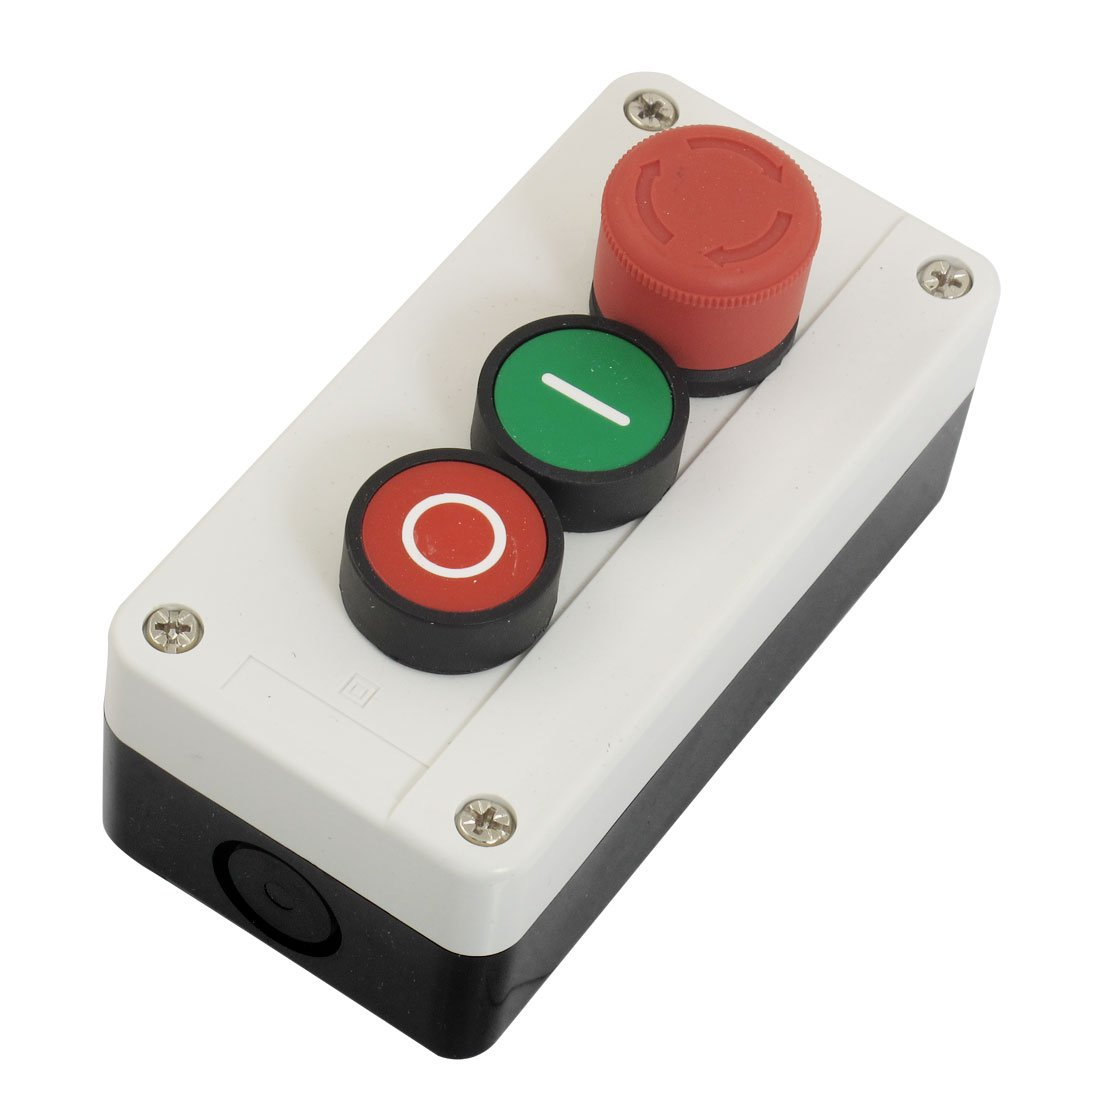 Promotion! NC Emergency Stop NO Red Green Momentary Push Button Switch Station 600V 10A promotion 22mm nc n c red mushroom emergency stop push button switch 600v 10a